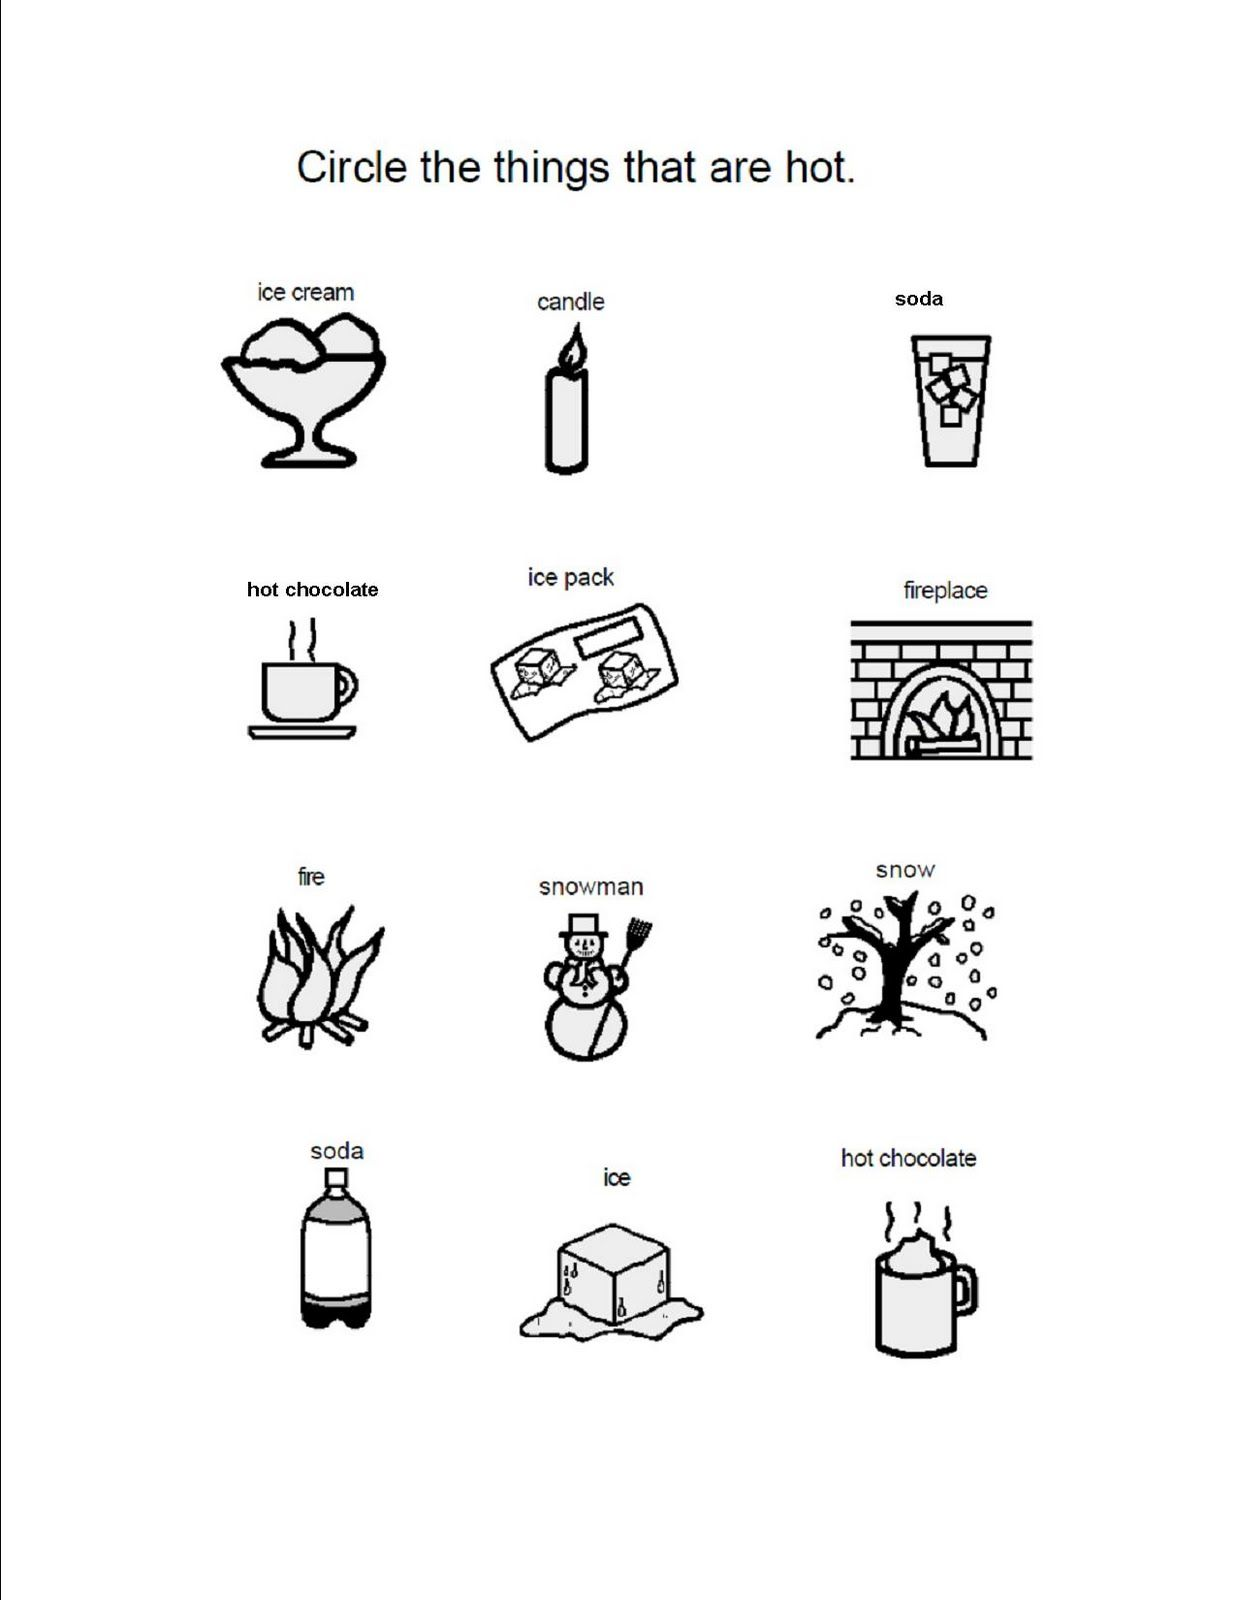 Worksheet Hot And Cold Worksheets For Kindergarten sense of taste activities it a worksheet in which students additional to enrich your childs speech and language learning